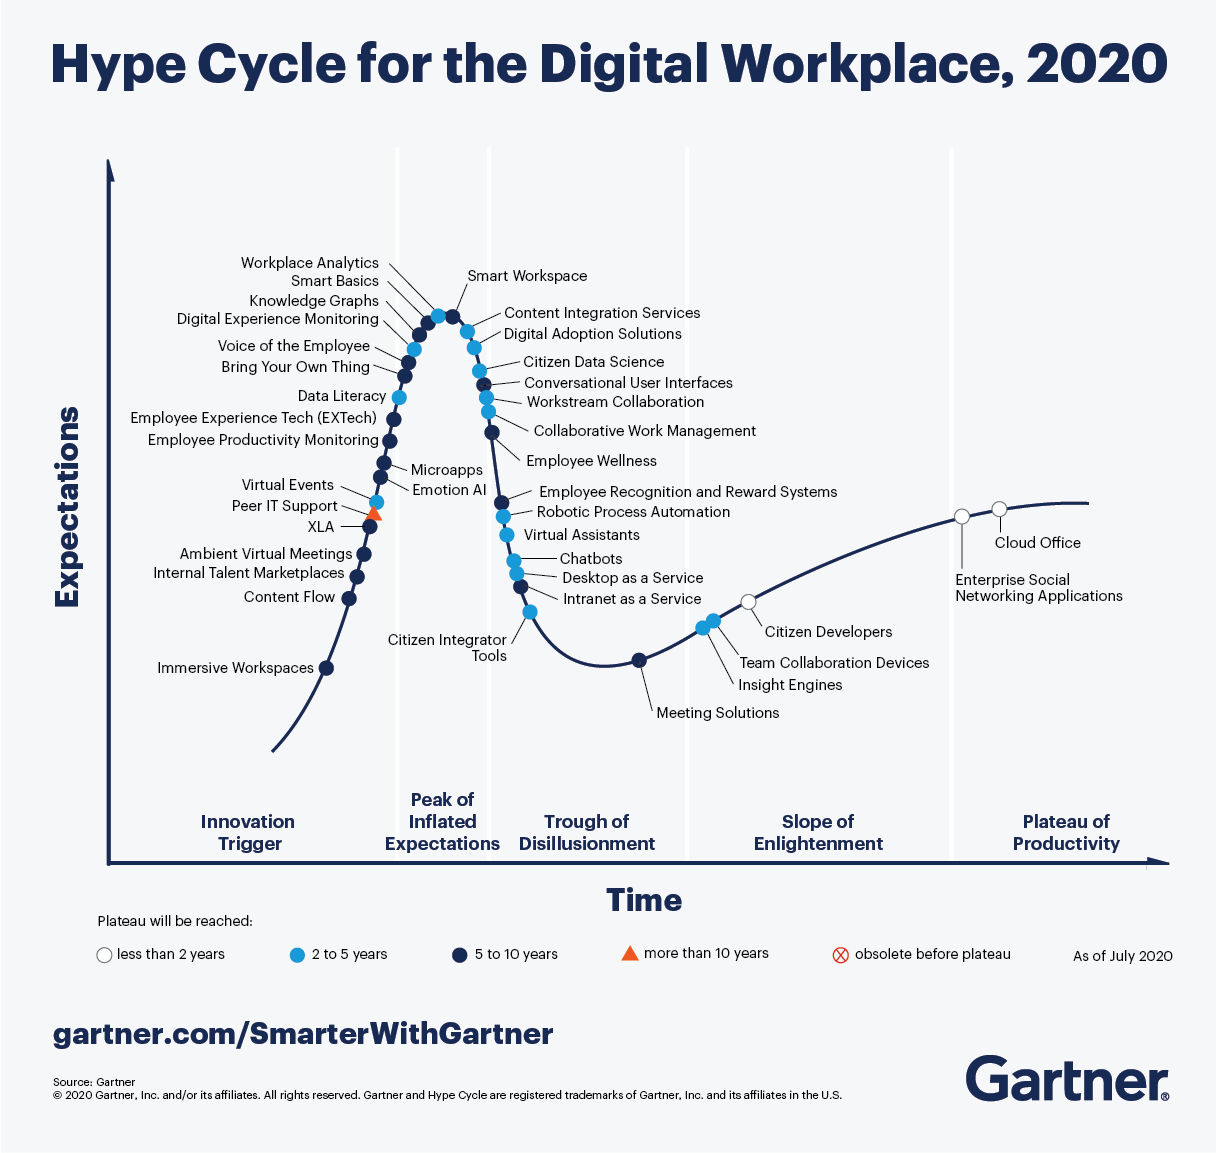 The Gartner Hype Cycle for the Digital Workplace, 2020 shows the top digital workplace trends that CIOs will be paying attention to in the years to come.